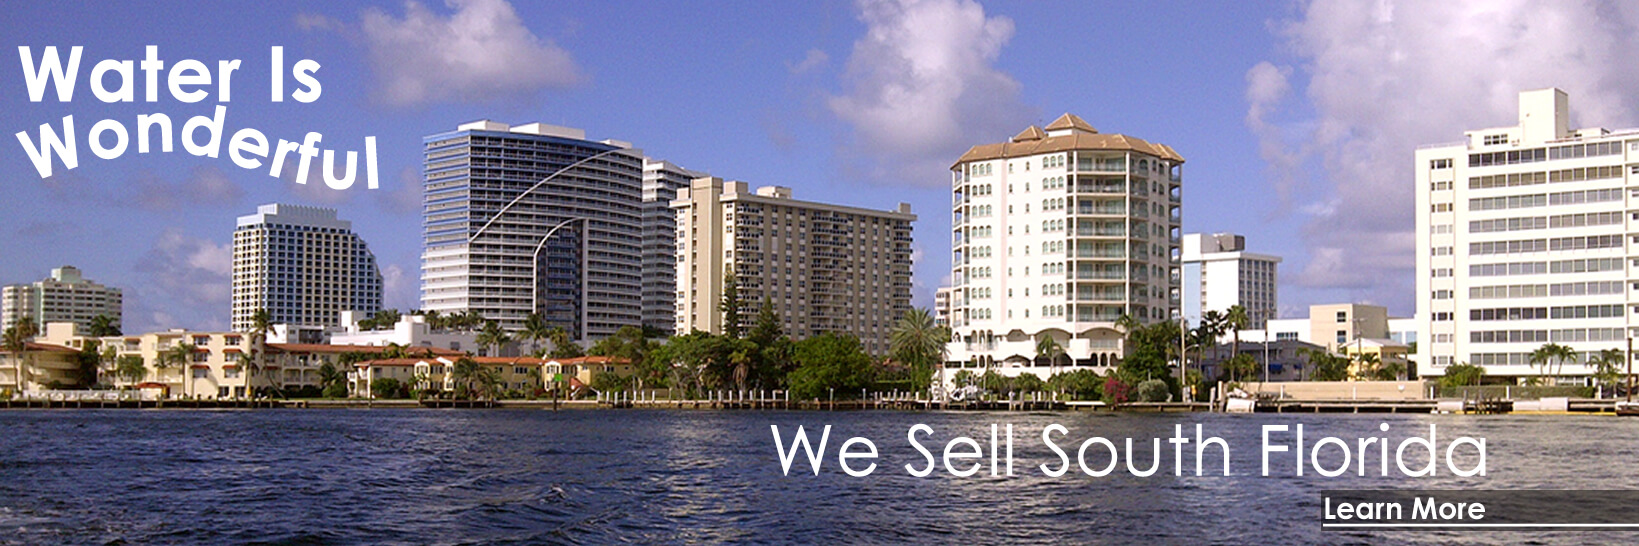 We Sell South Florida